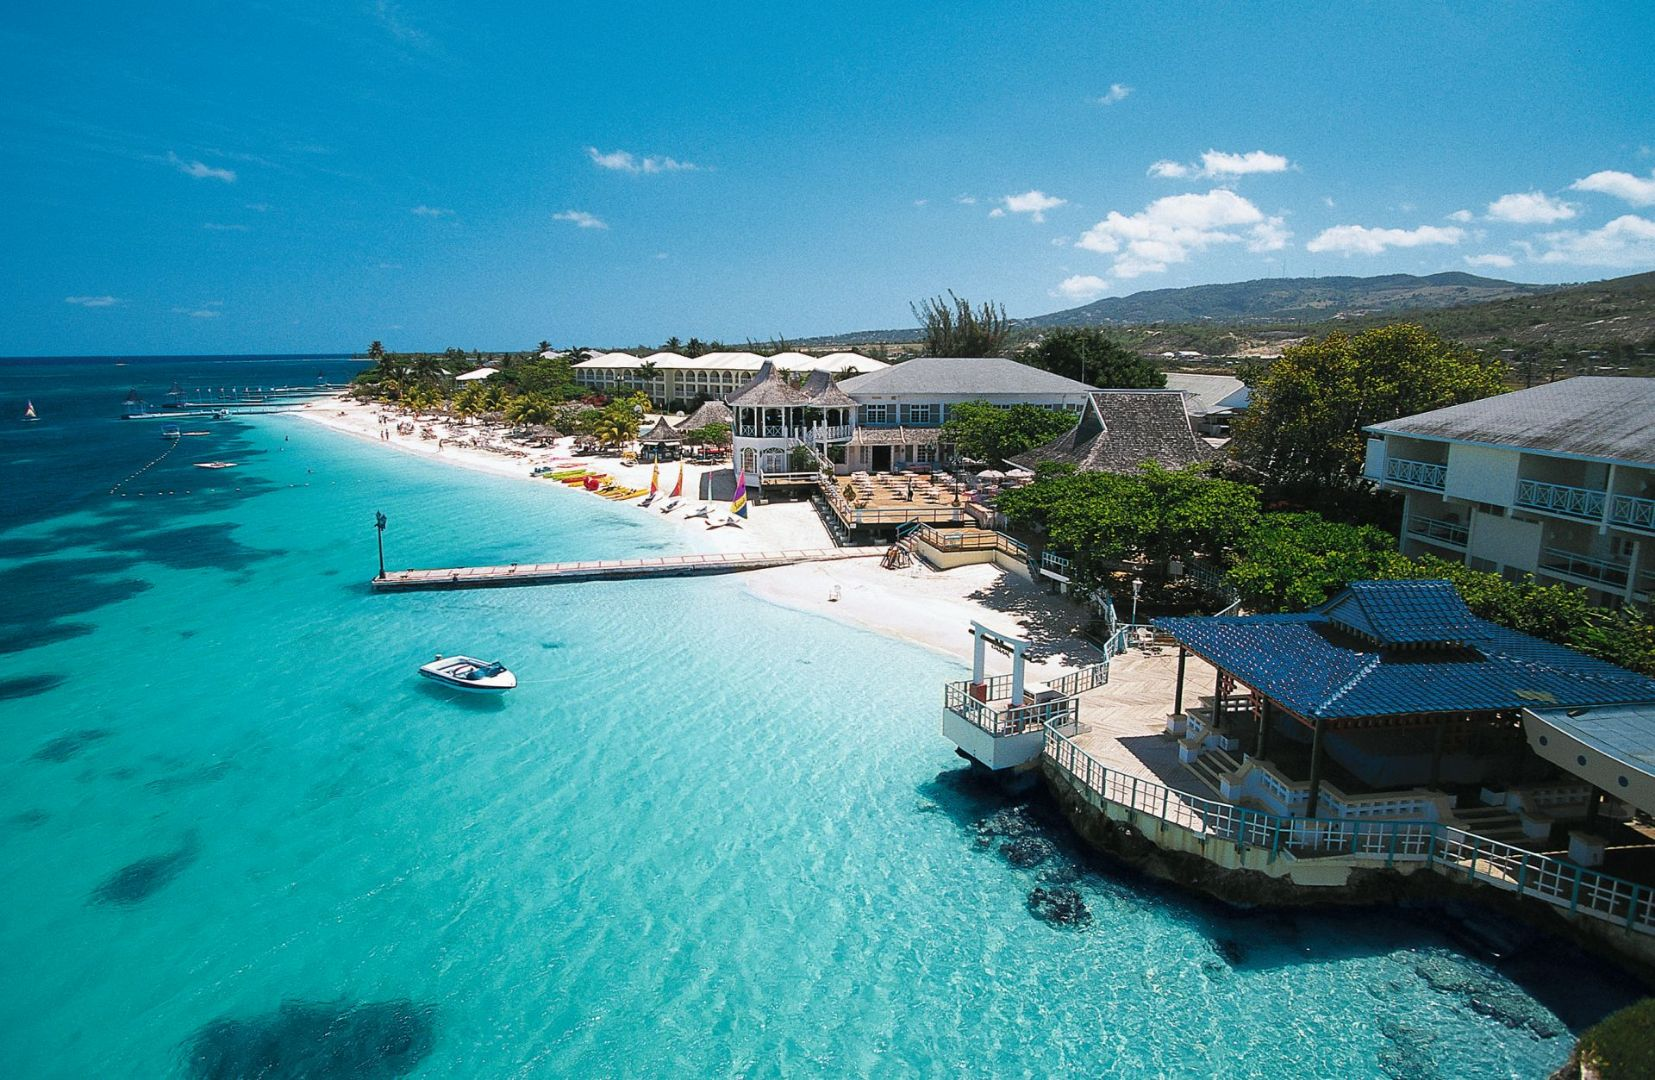 The Best Time to Visit Jamaica